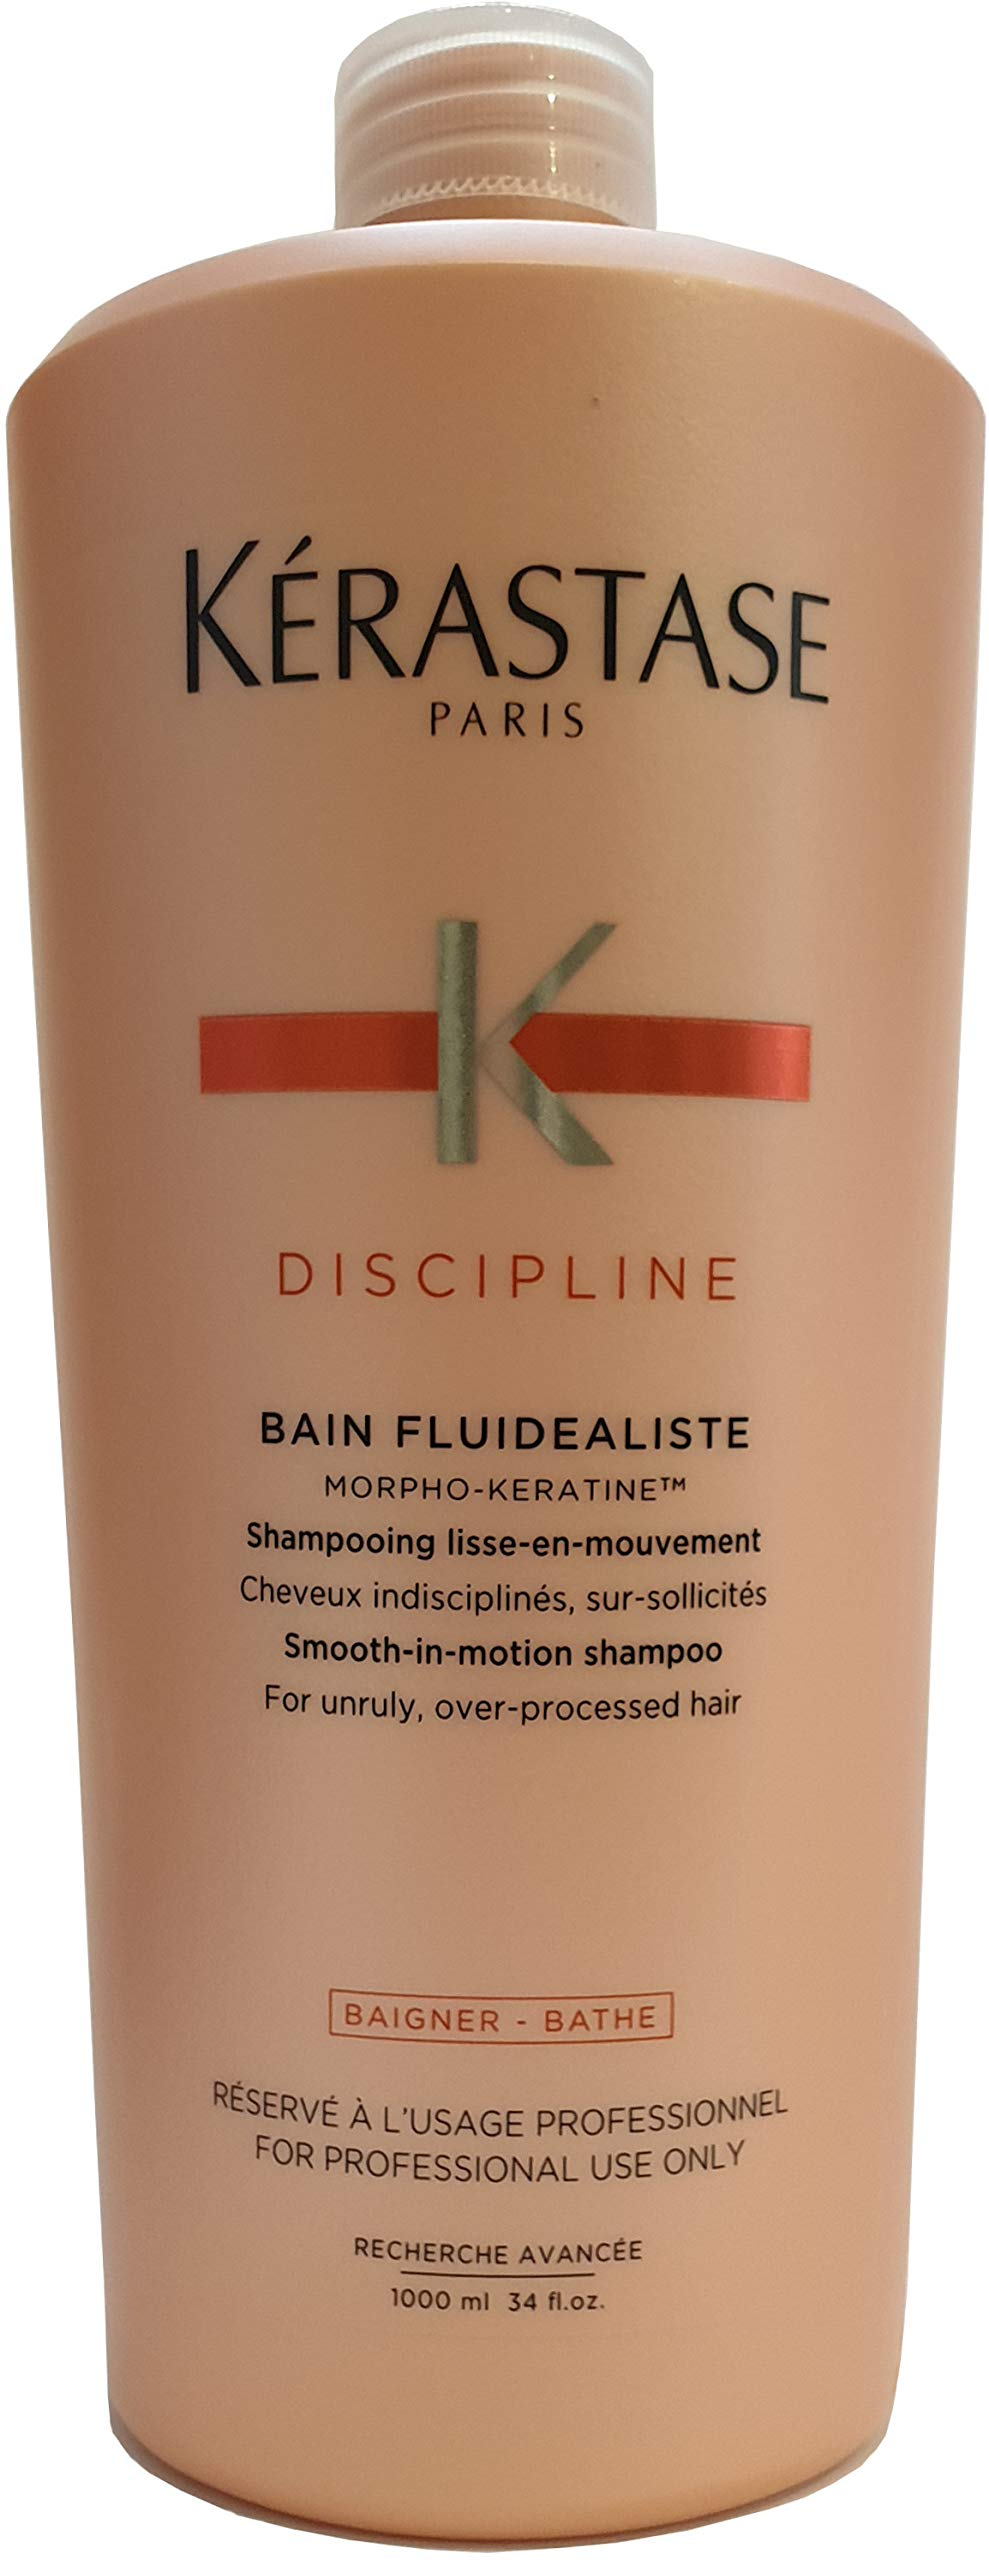 Kerastase Discipline Bain Fluidealiste No Sulfate Smooth-in-Motion Shampoo, 34 Ounce by KERASTASE